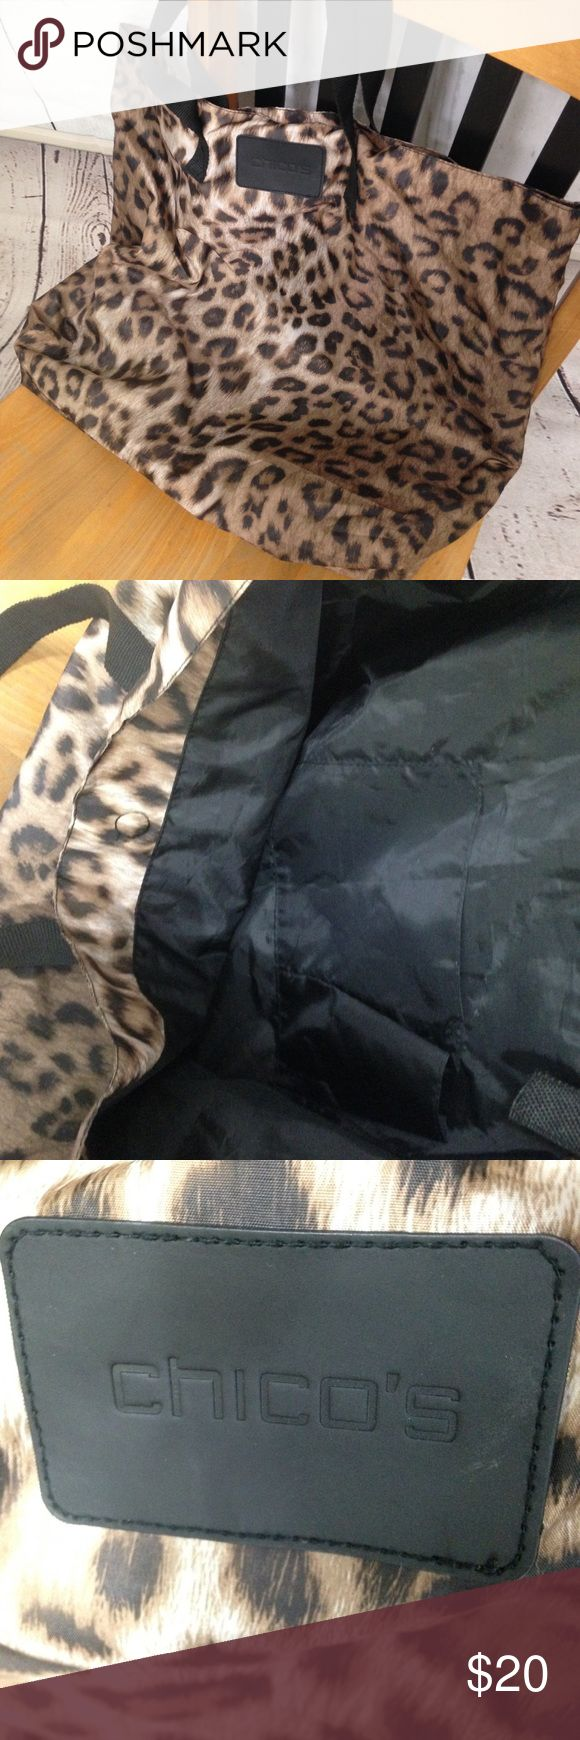 "🆕 Listing! Chicos Animal Print Tote Bag Lightweight animal print tote from Chicos. Lined in black. Measures 18x21 with 22"" double strap handles. Excellent condition. Chico's Bags Totes"